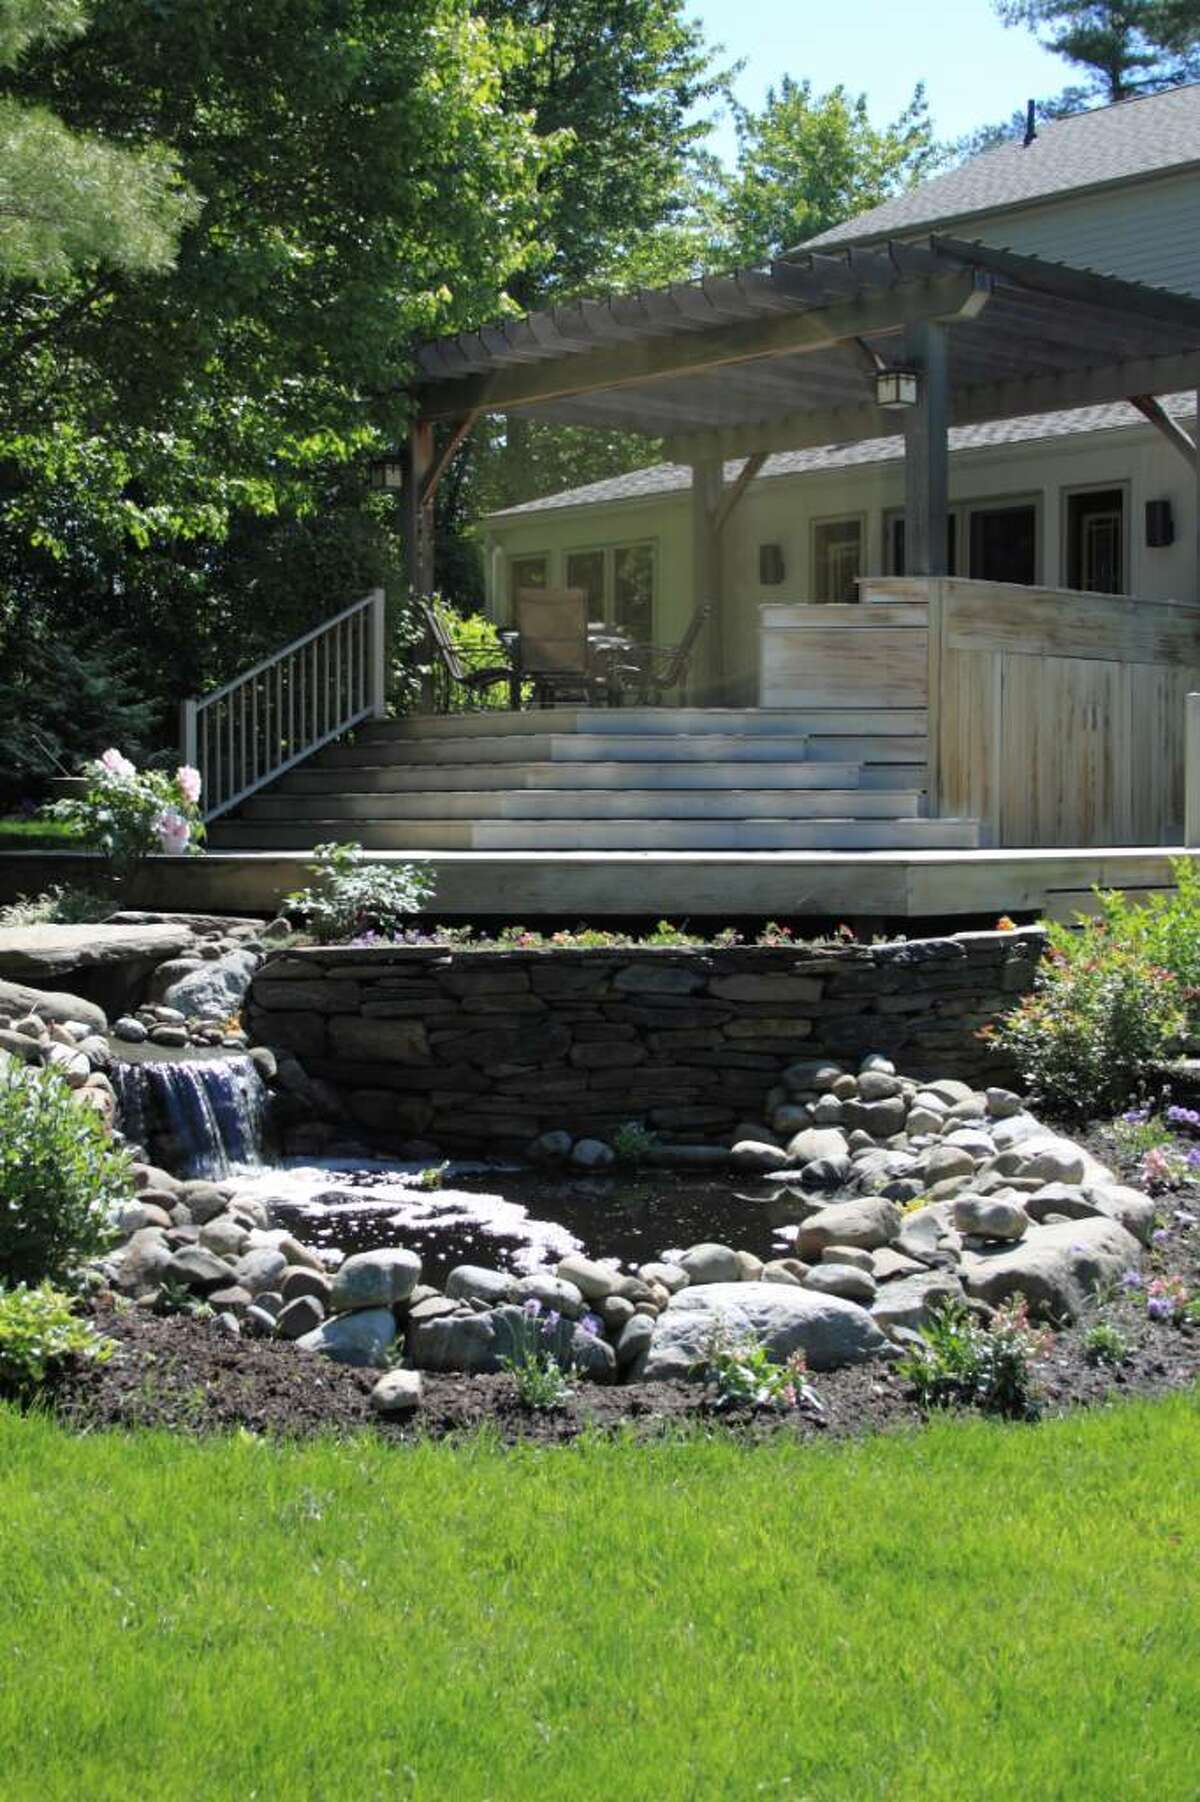 Jean and Marty Kaback have created a suburban oasis. (Nancy Bruno / Life at Home)